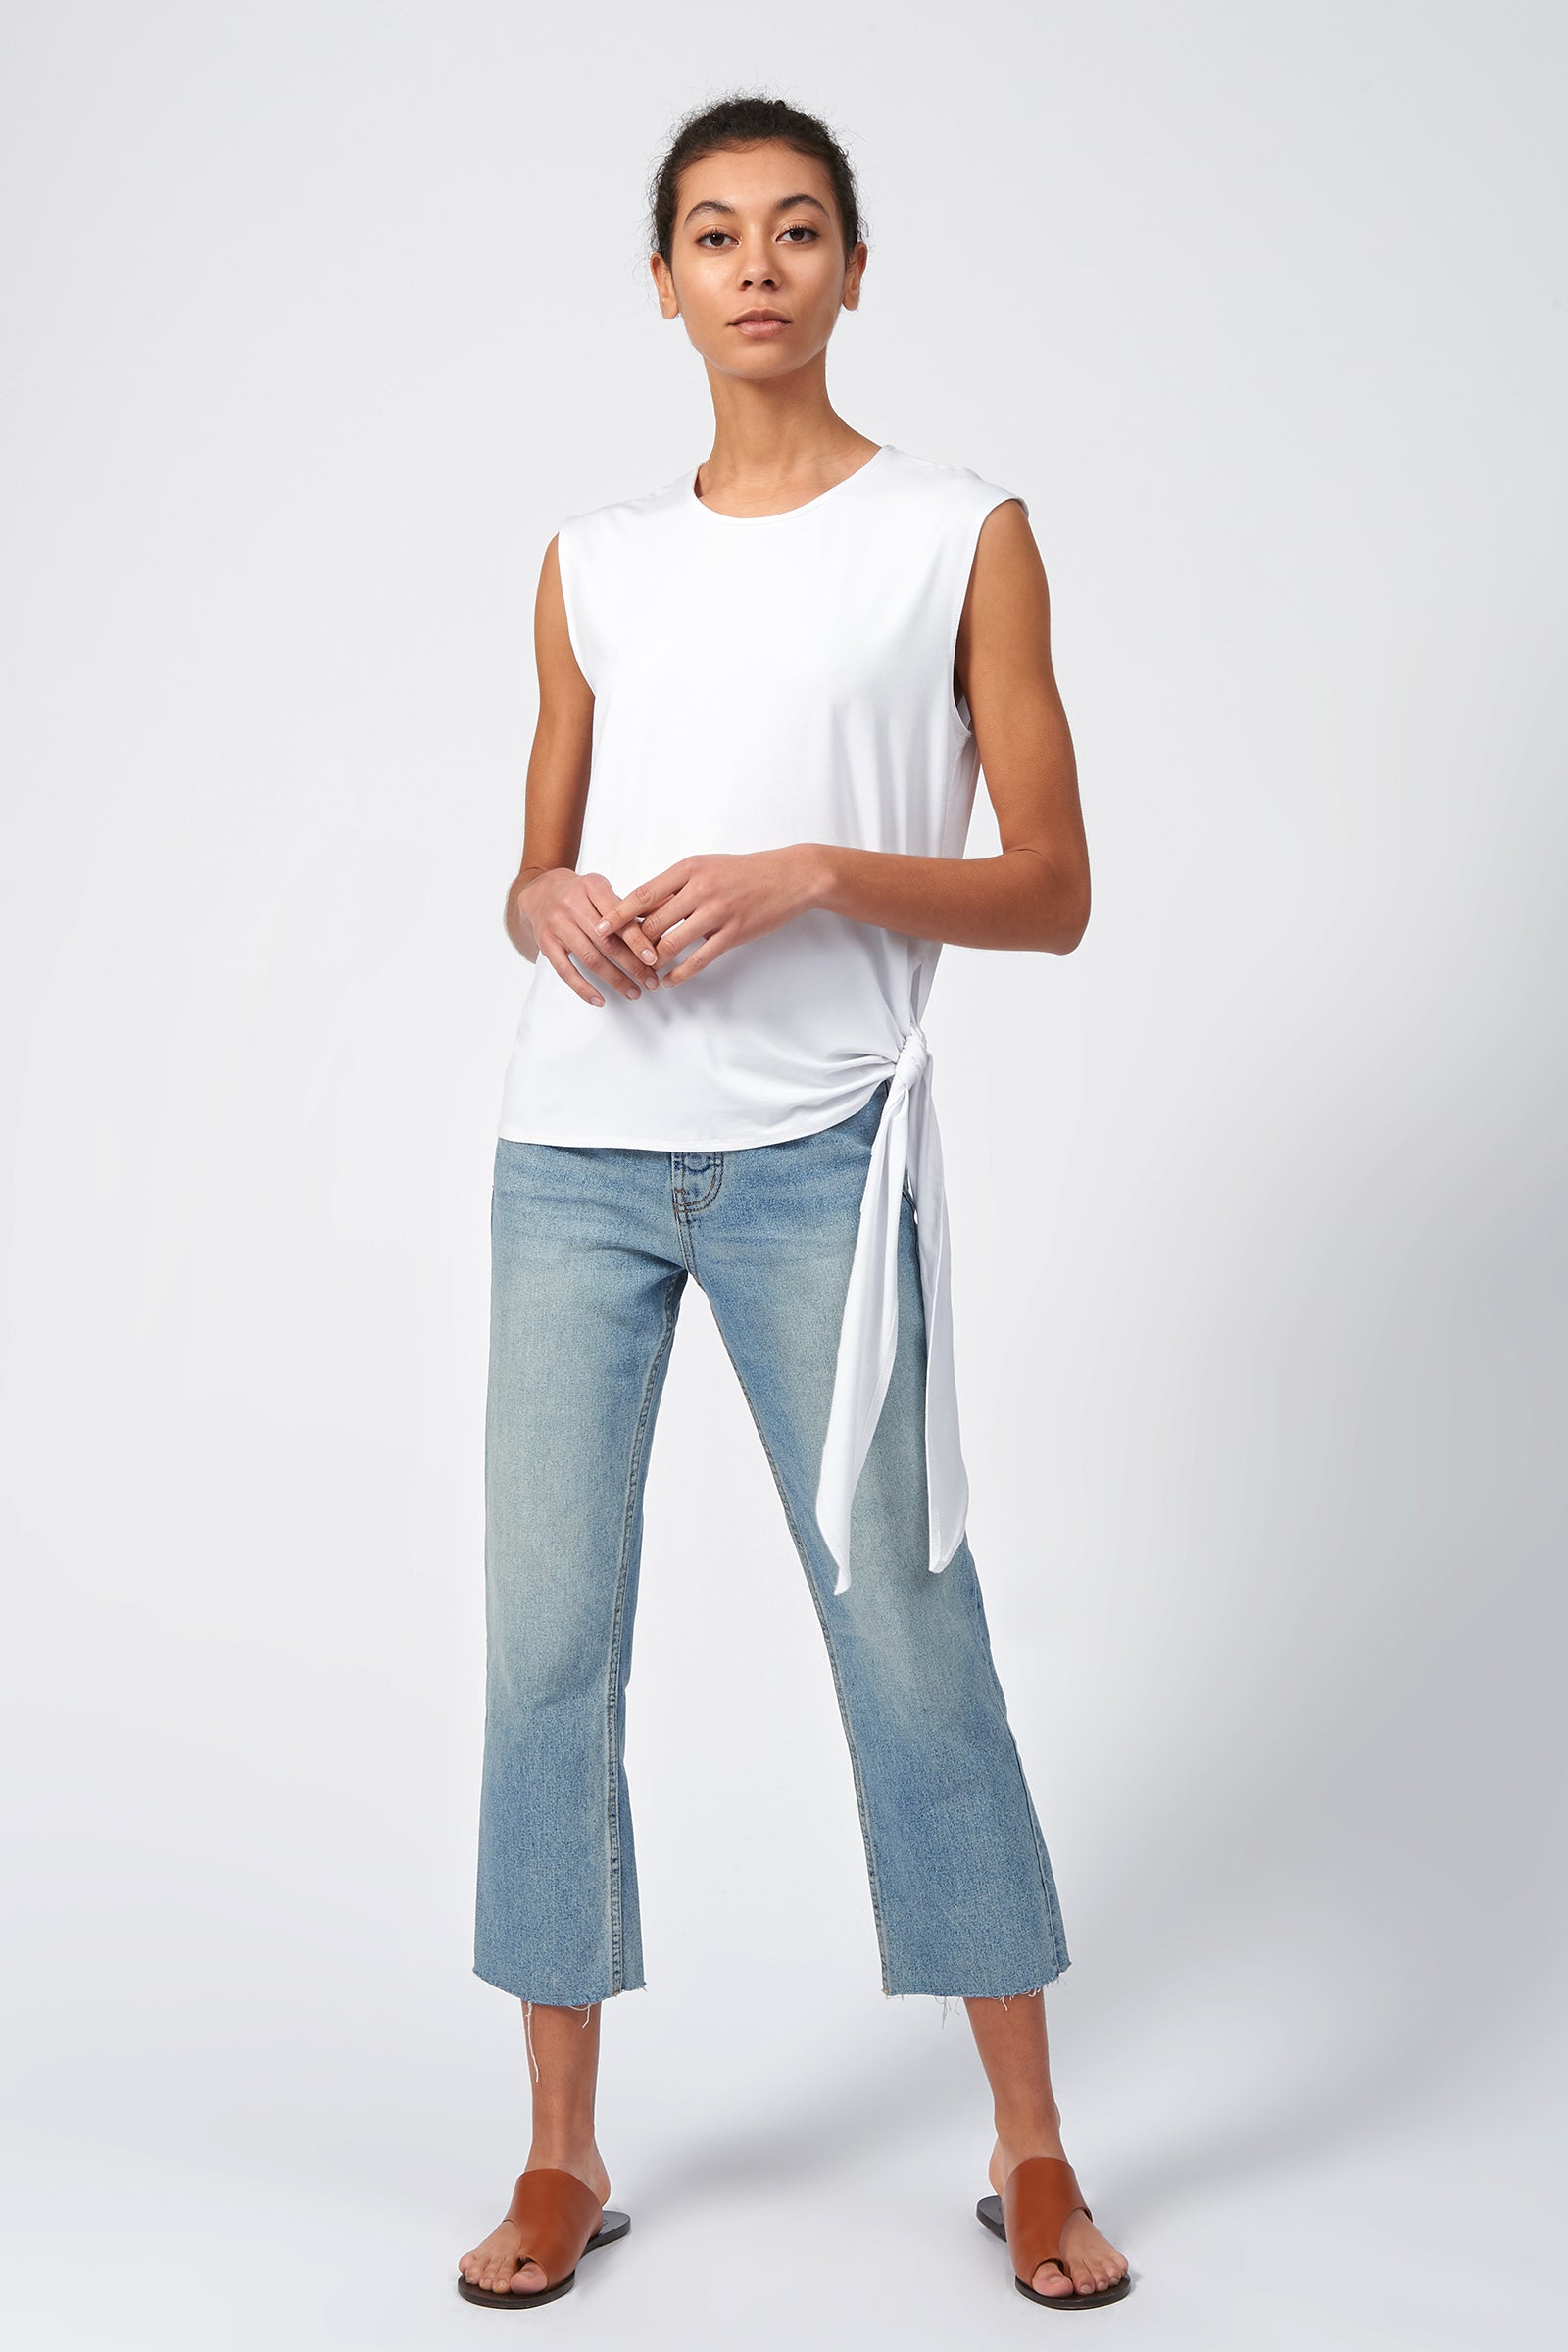 Kal Rieman Tip Hip Tank in White on Model Front View